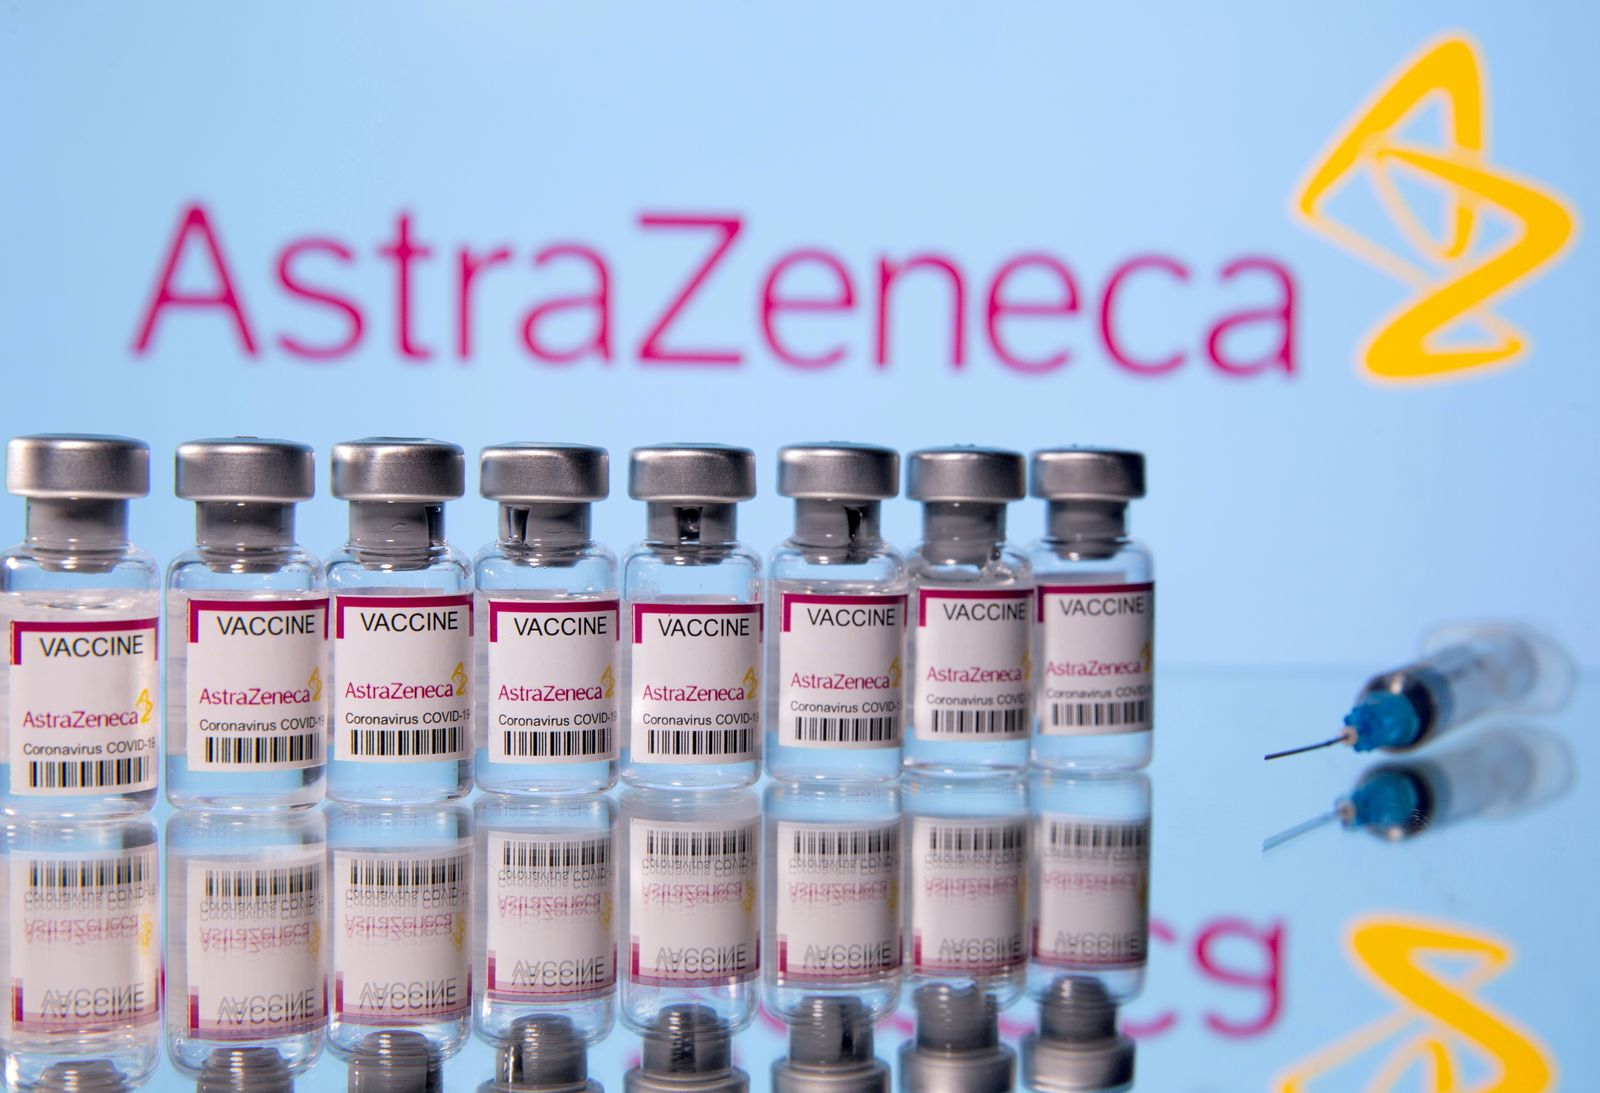 FILE PHOTO: Vials labelled 'Astra Zeneca COVID-19 Coronavirus Vaccine' and a syringe are seen in front of a displayed AstraZeneca logo in this illustration photo